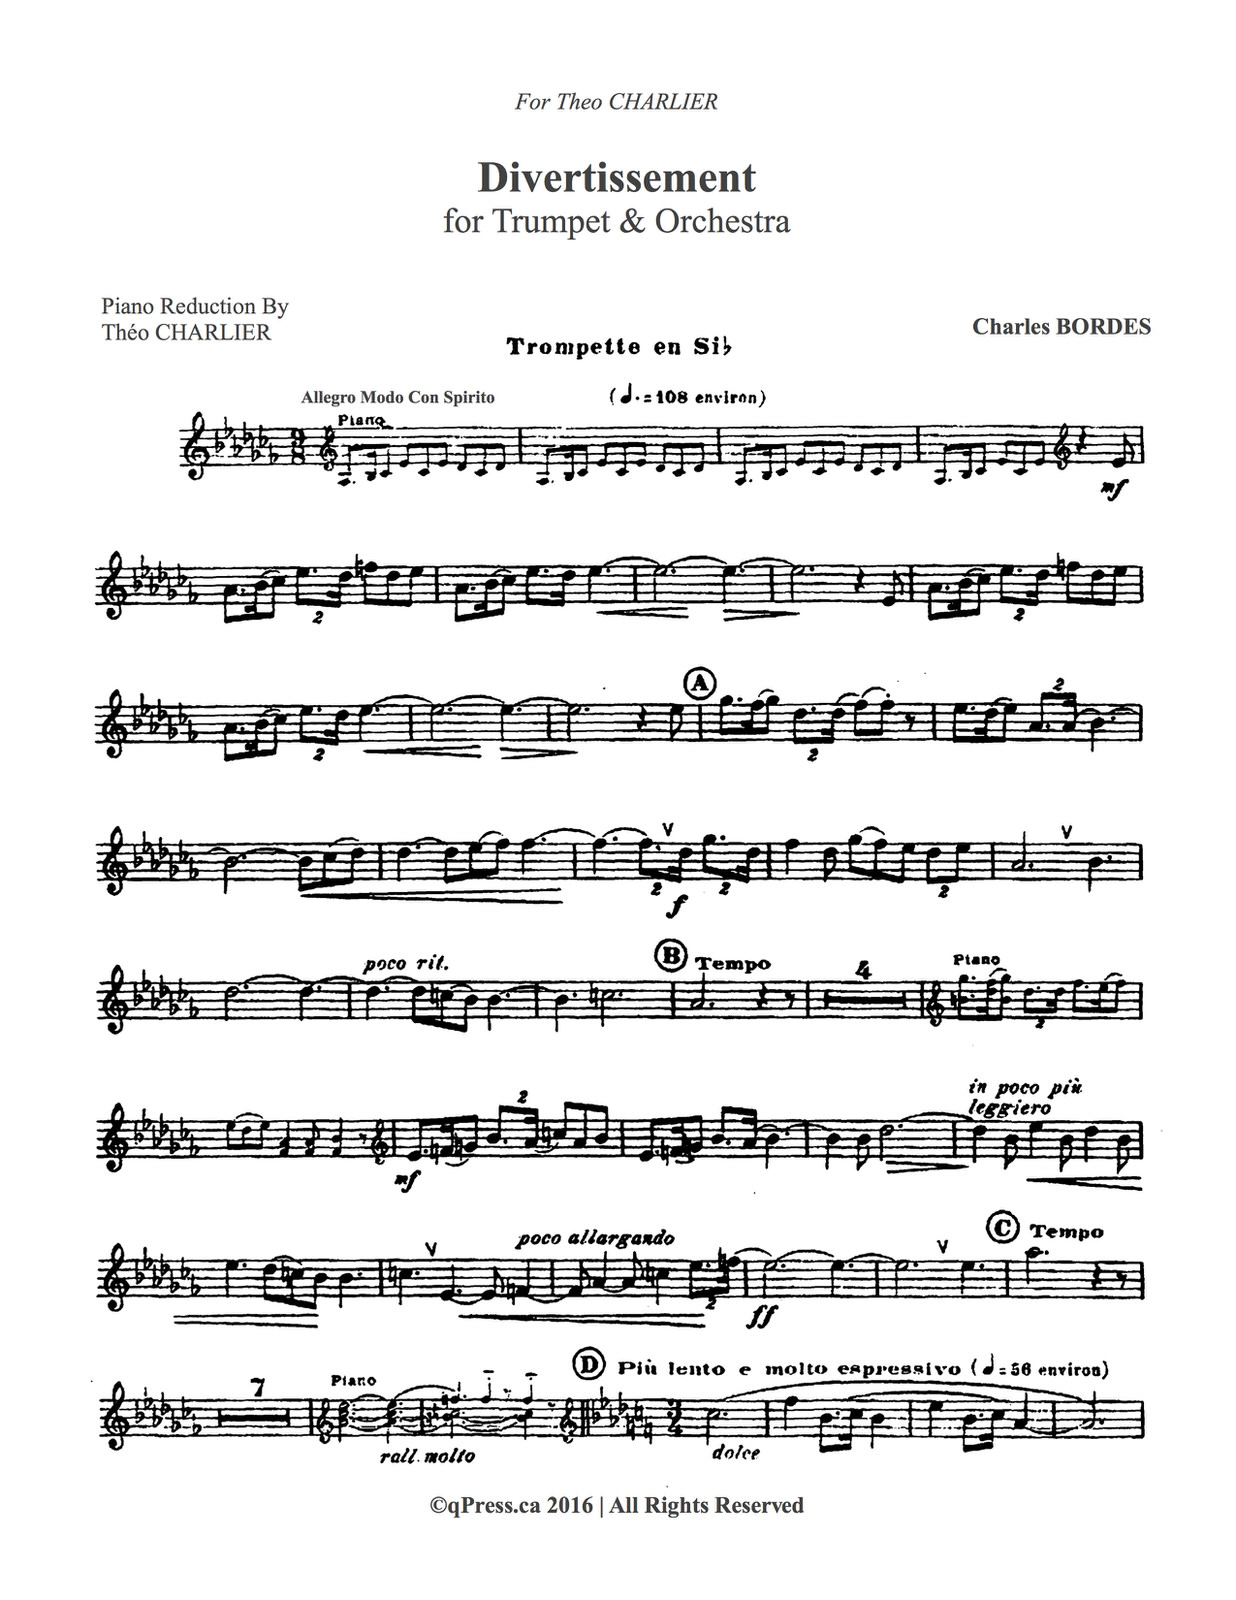 Bordes, Divertissement for Trumpet and Piano 2